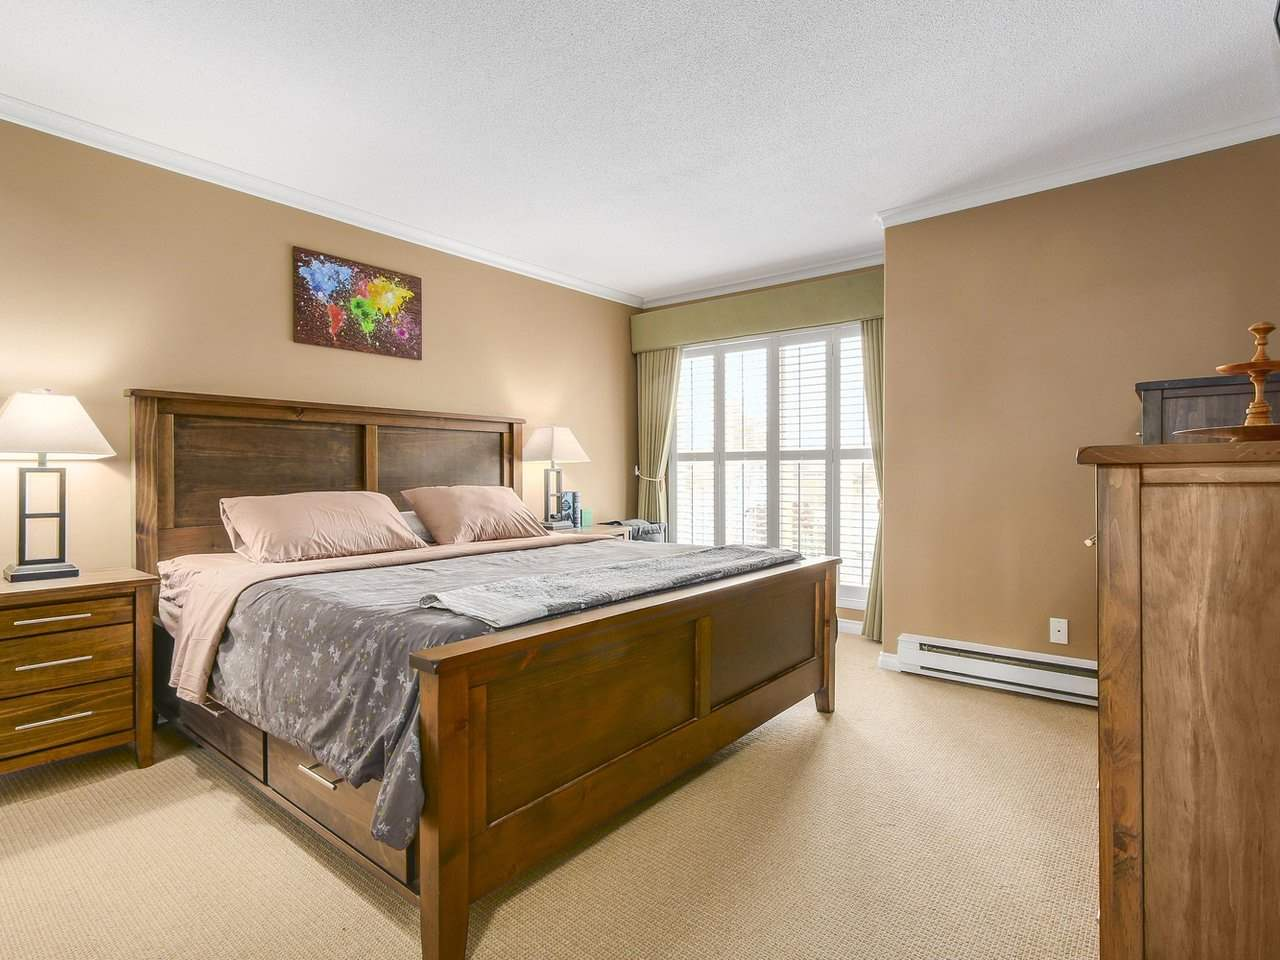 Photo 8: 304 8120 BENNETT Road in Richmond: Brighouse South Condo for sale : MLS® # R2191205